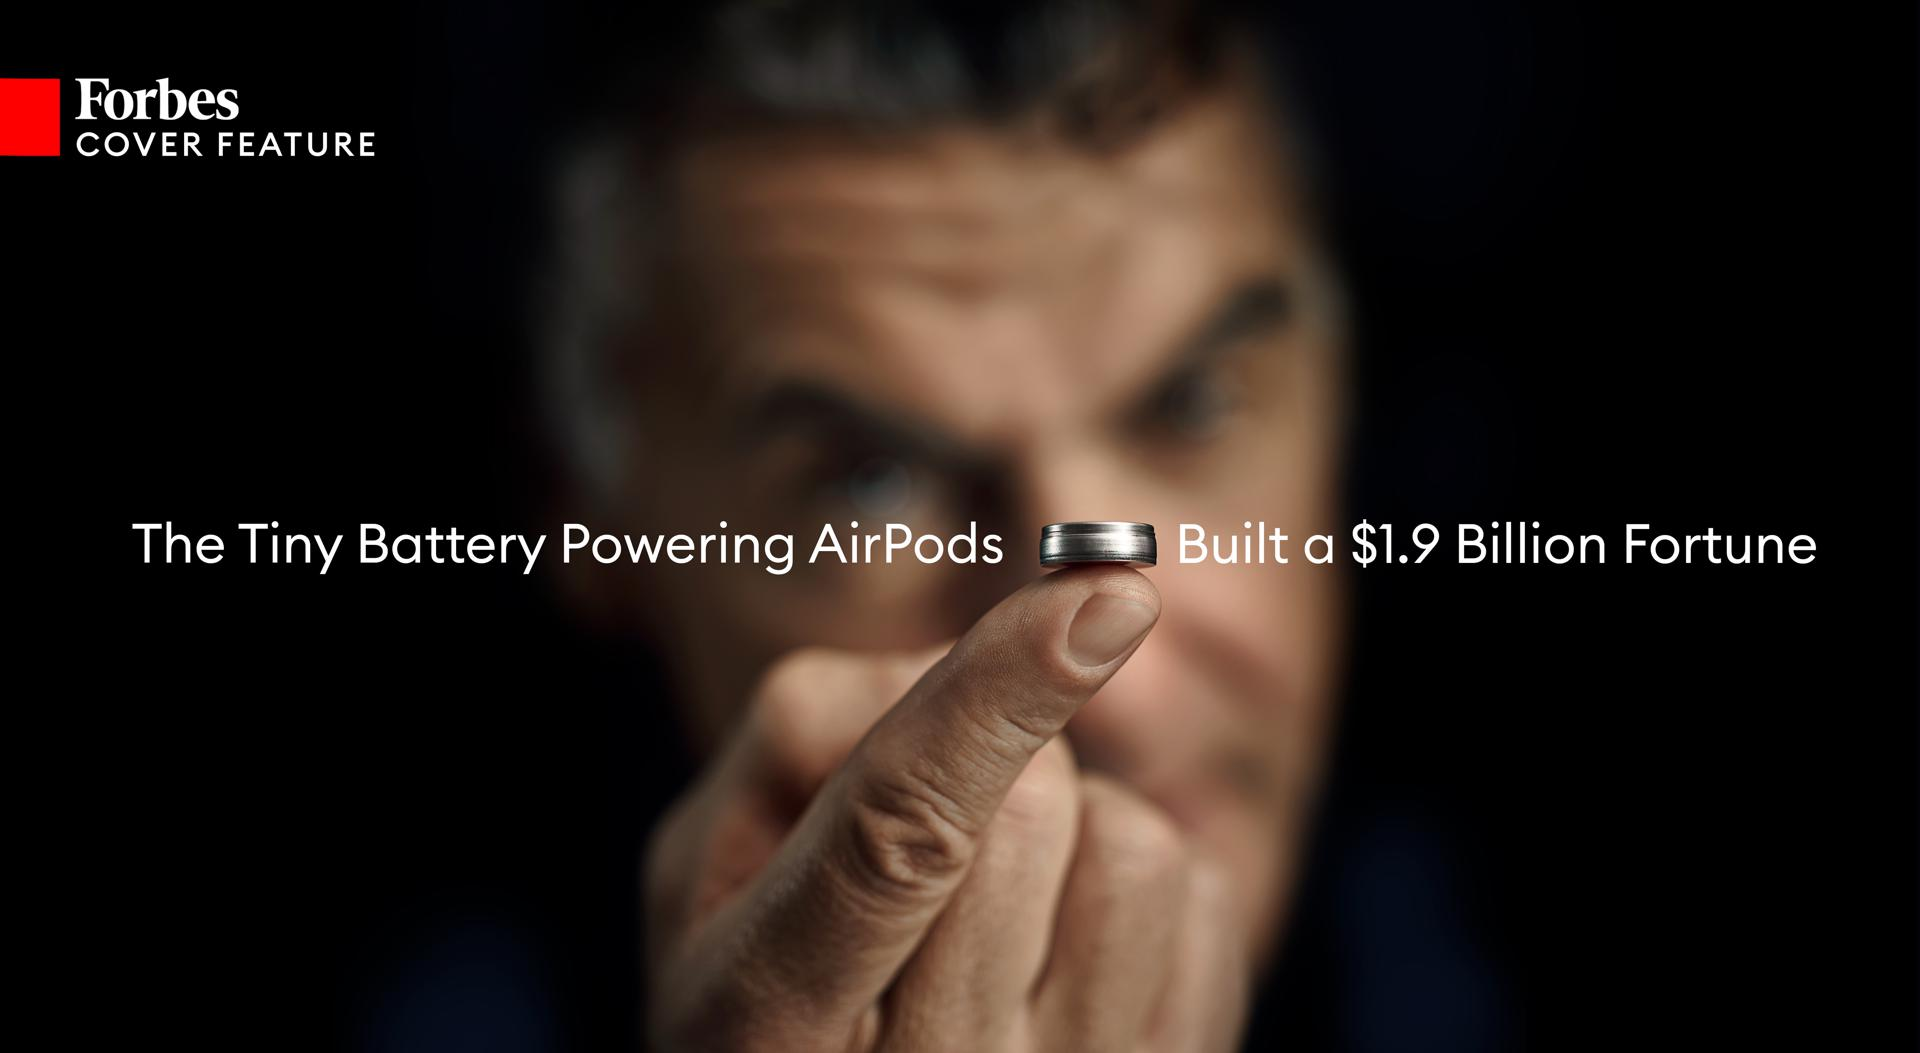 How A Tiny Battery (Thanks Apple!) Built A New $1.9 Billion Fortune